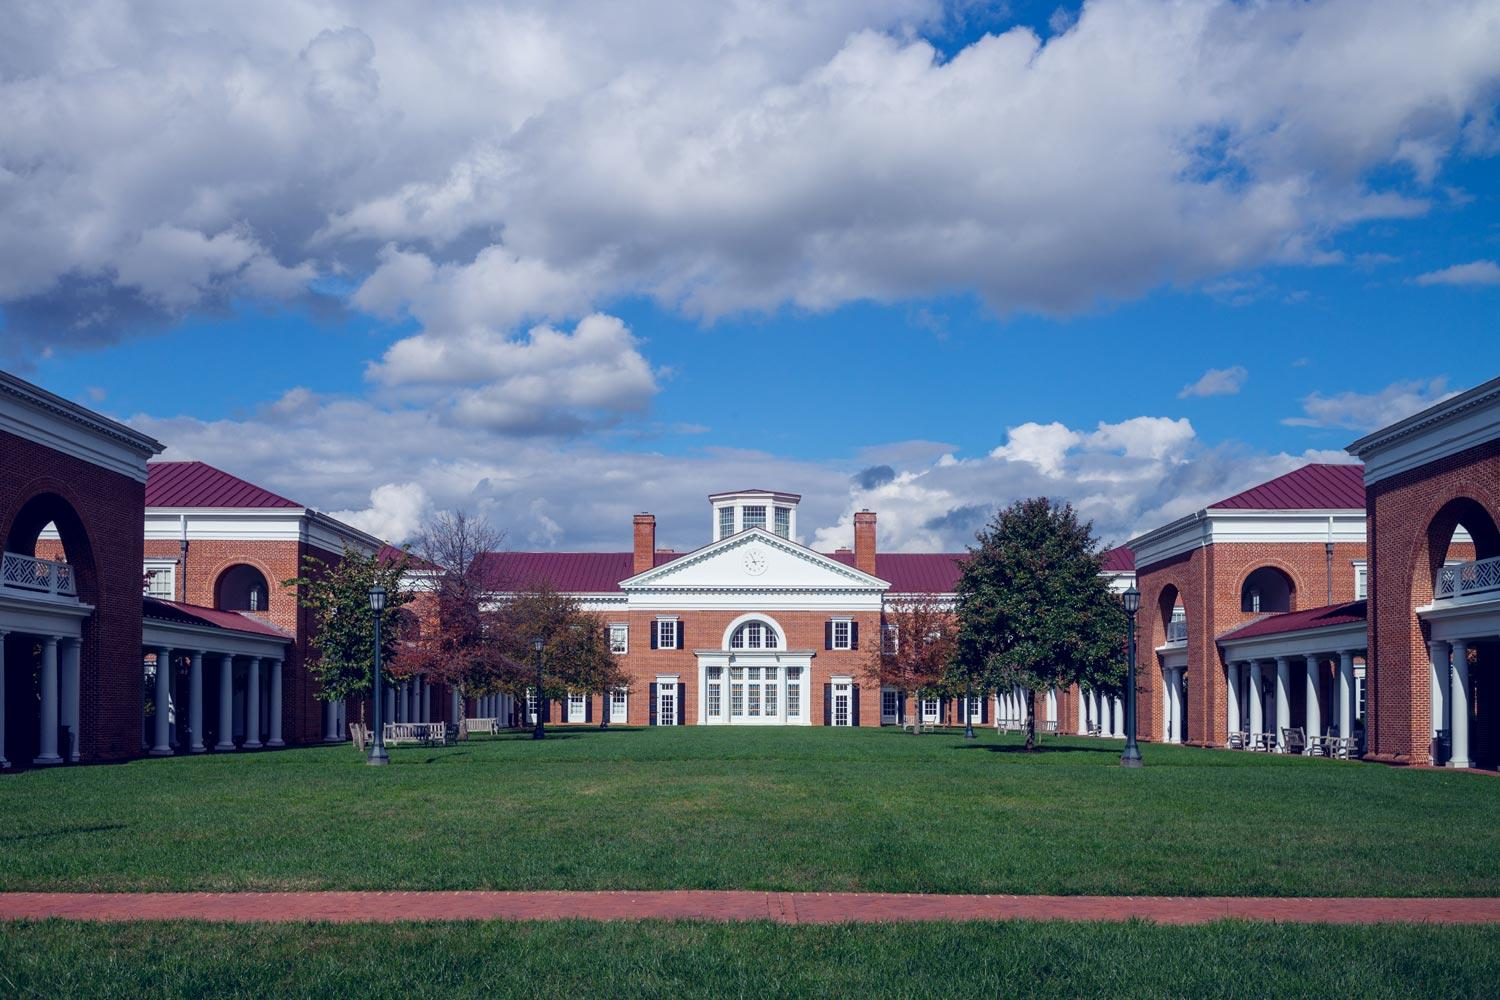 The Economist named Darden's full-time MBA program No. 10 in the world, with the highest quality faculty among the Top 15 of global business schools and top ratings in key areas of student satisfaction.